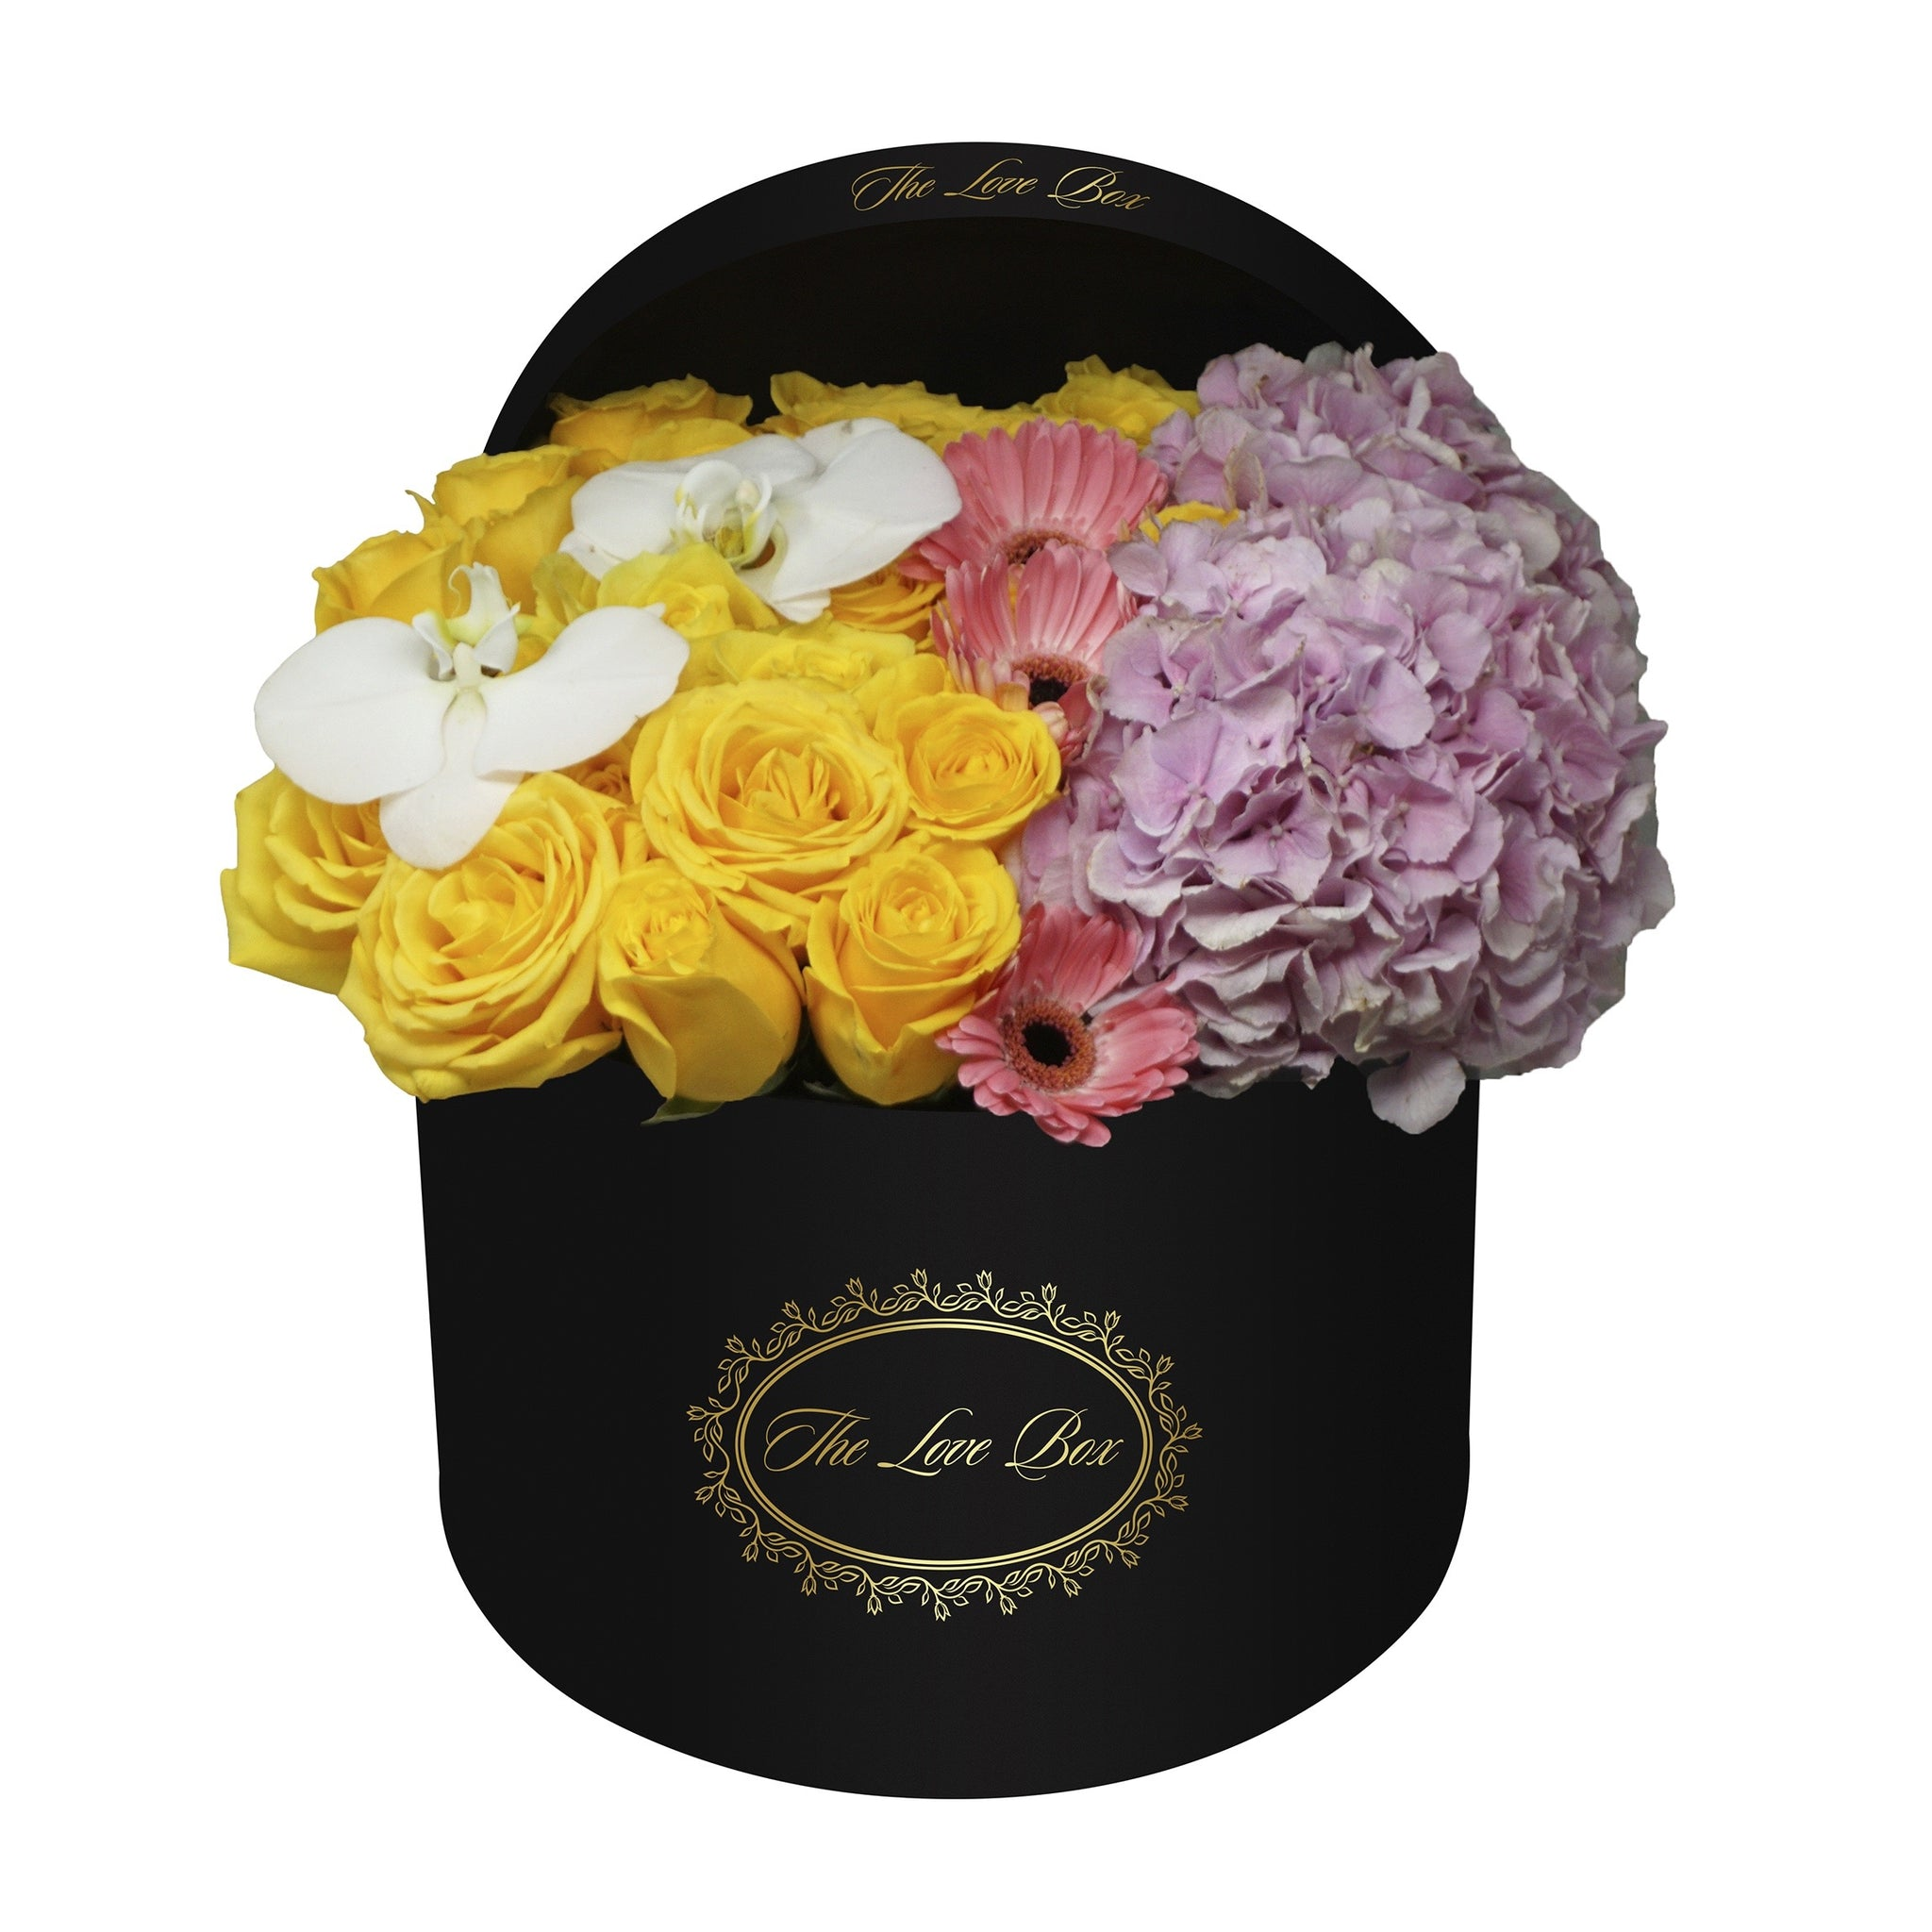 Roses, Hydrangeas, and Orchids in Large Black Box - The Love Box Flowers